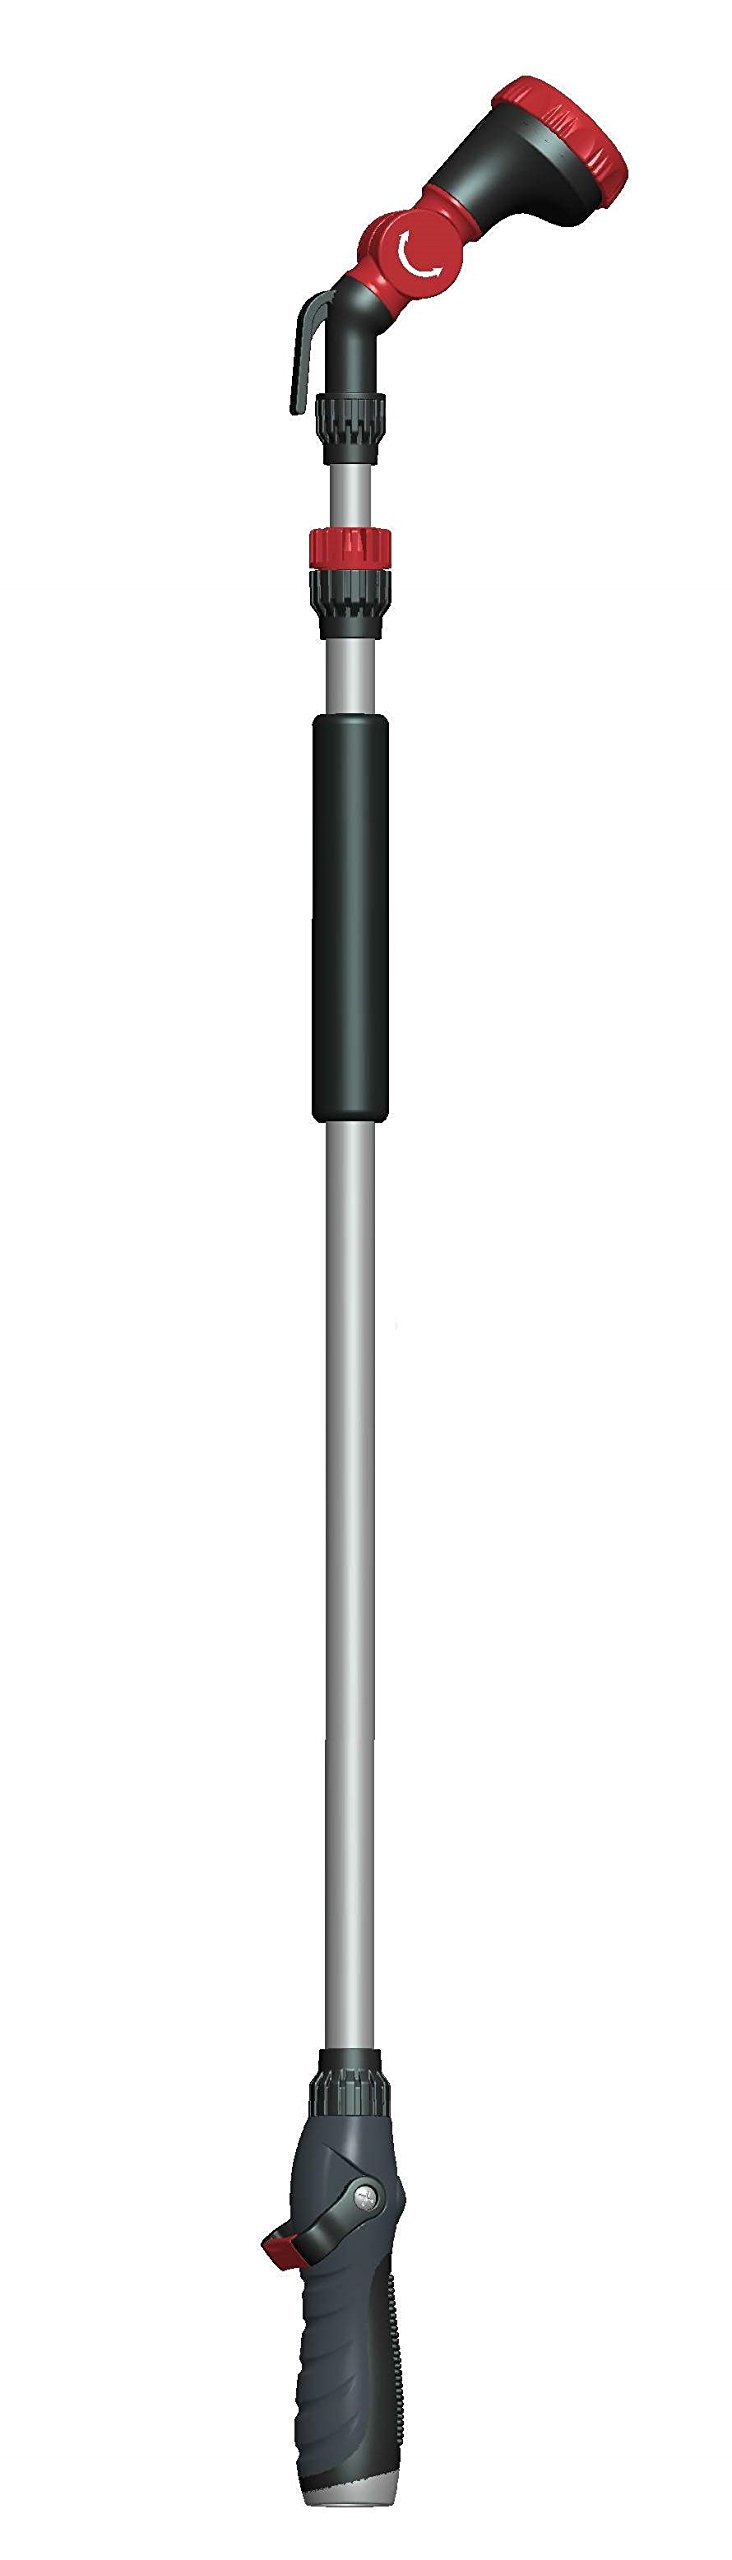 Rainwave RW-TCEW 60'' Telescopic Watering Wand by Rainwave